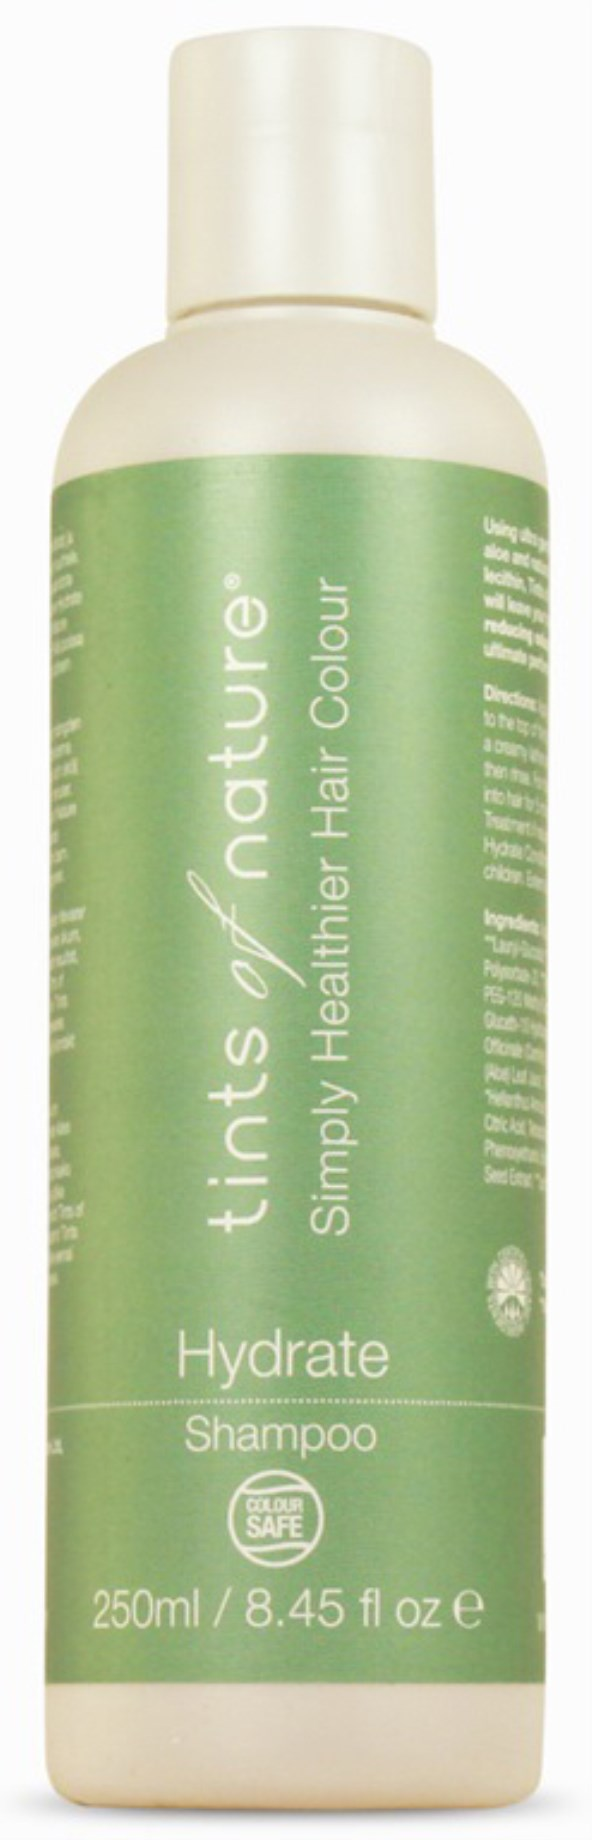 Tints of Nature Hydrate Shampoo,  - Tints of Nature